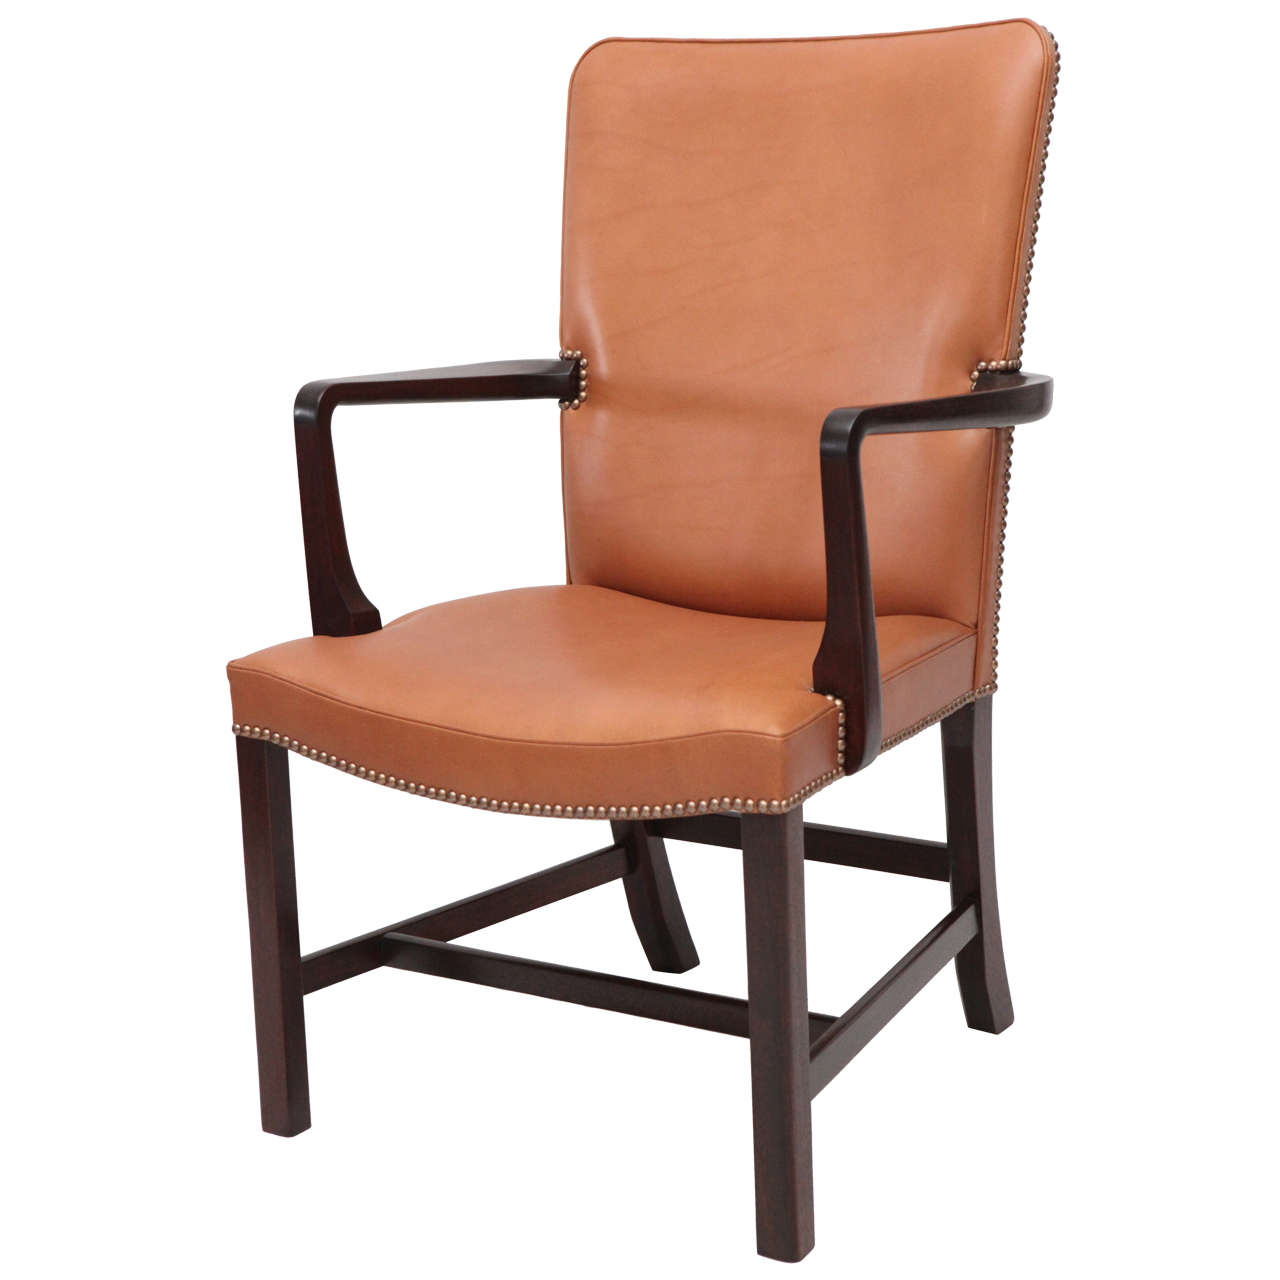 Kaare klint high back armchair at 1stdibs for Armchair with high back